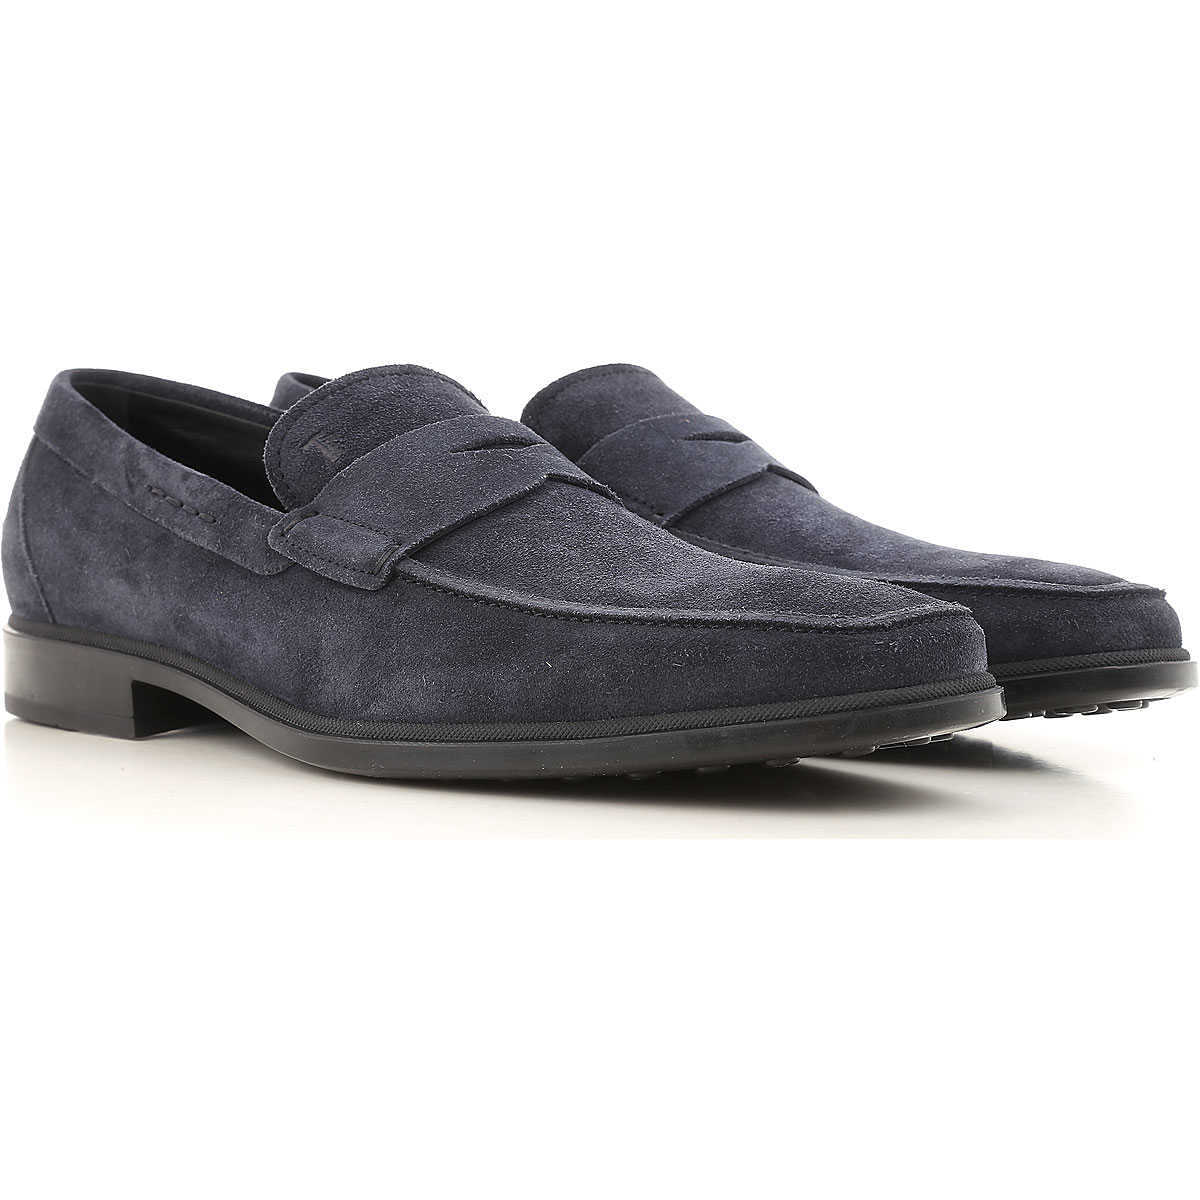 Tods Loafers for Men On Sale Midnight - GOOFASH